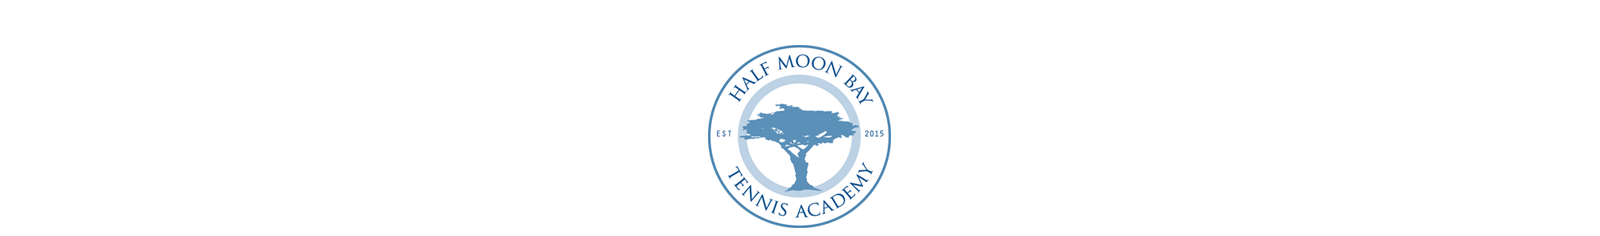 Half Moon Bay Tennis Academy Logo